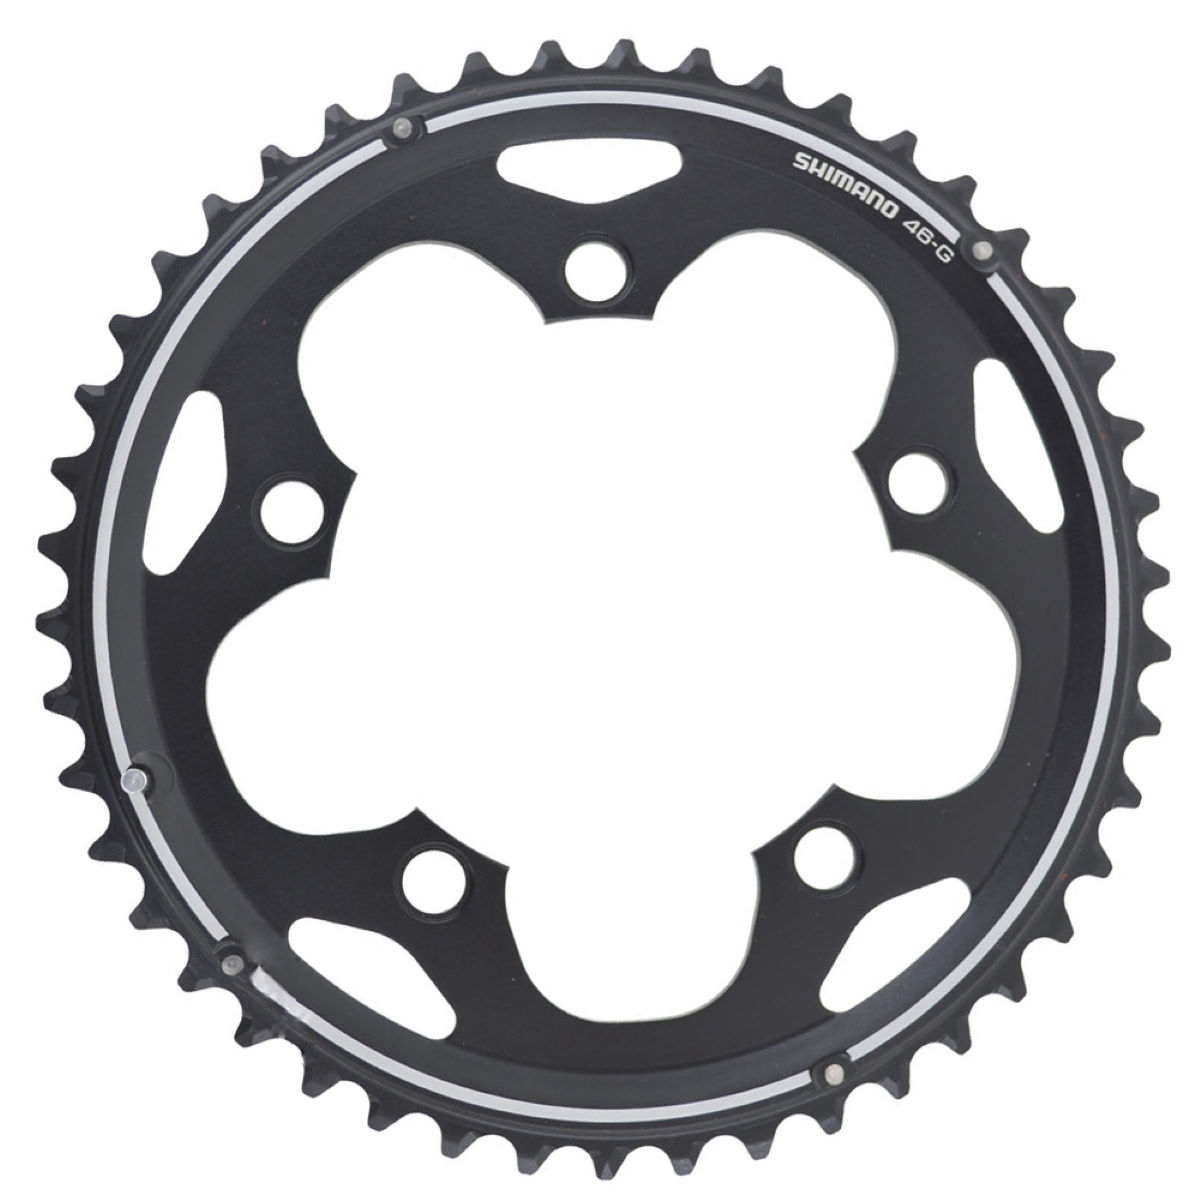 Plateau Shimano 105 FCCX50 Double (10 vitesses) - 46t 10 Speed Noir